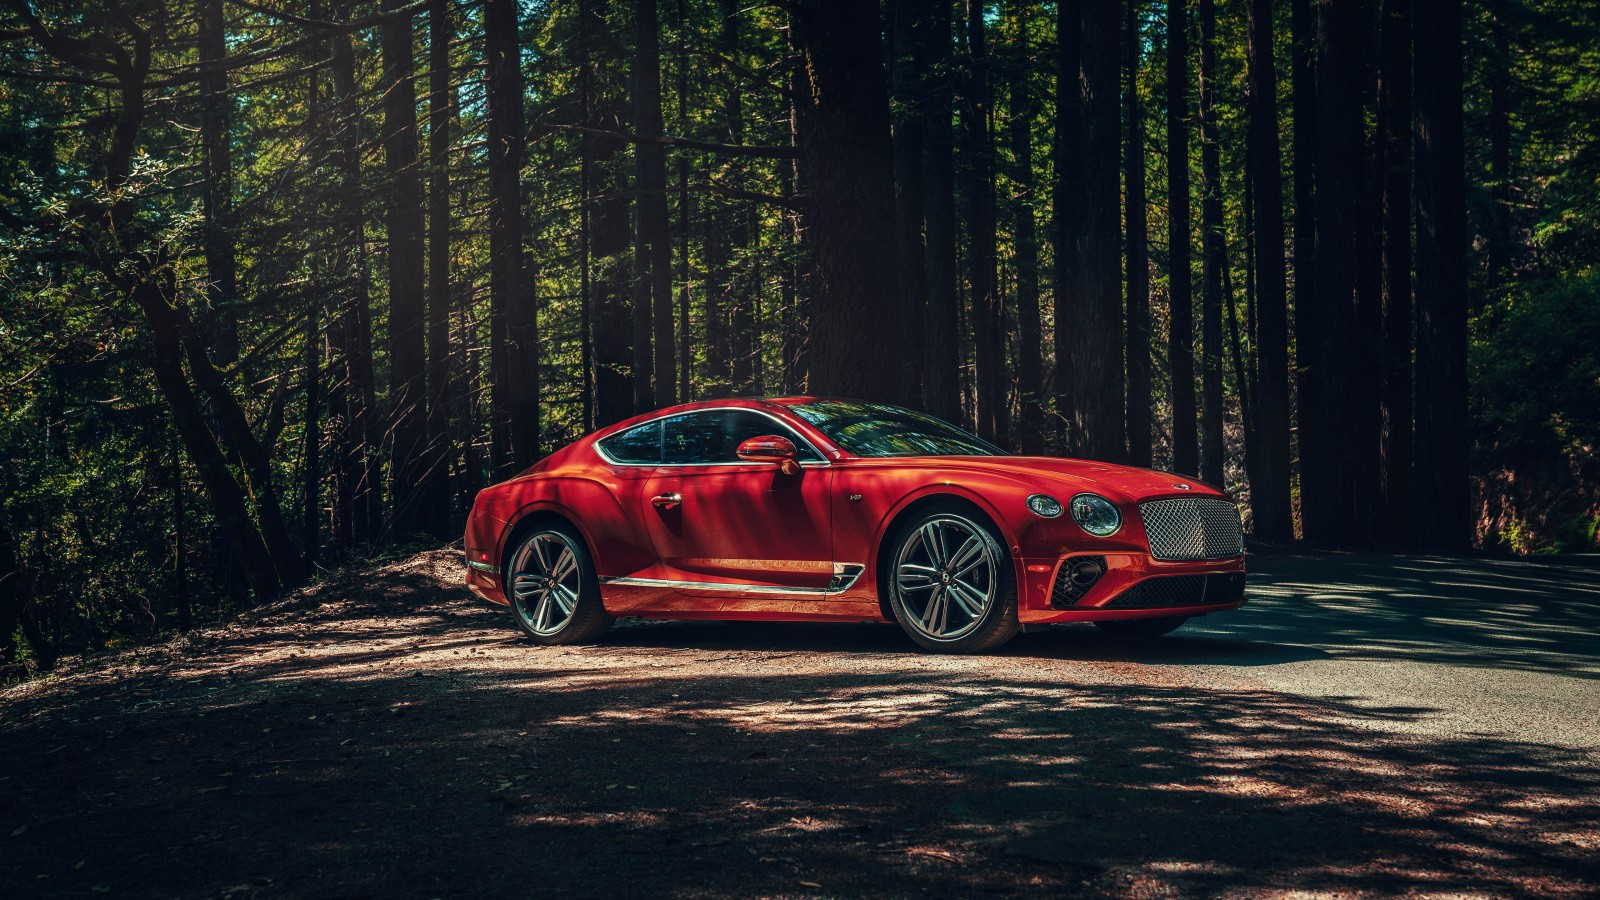 2020 Bentley Continental GT V8 4K 2 Wallpaper | HD Car ...